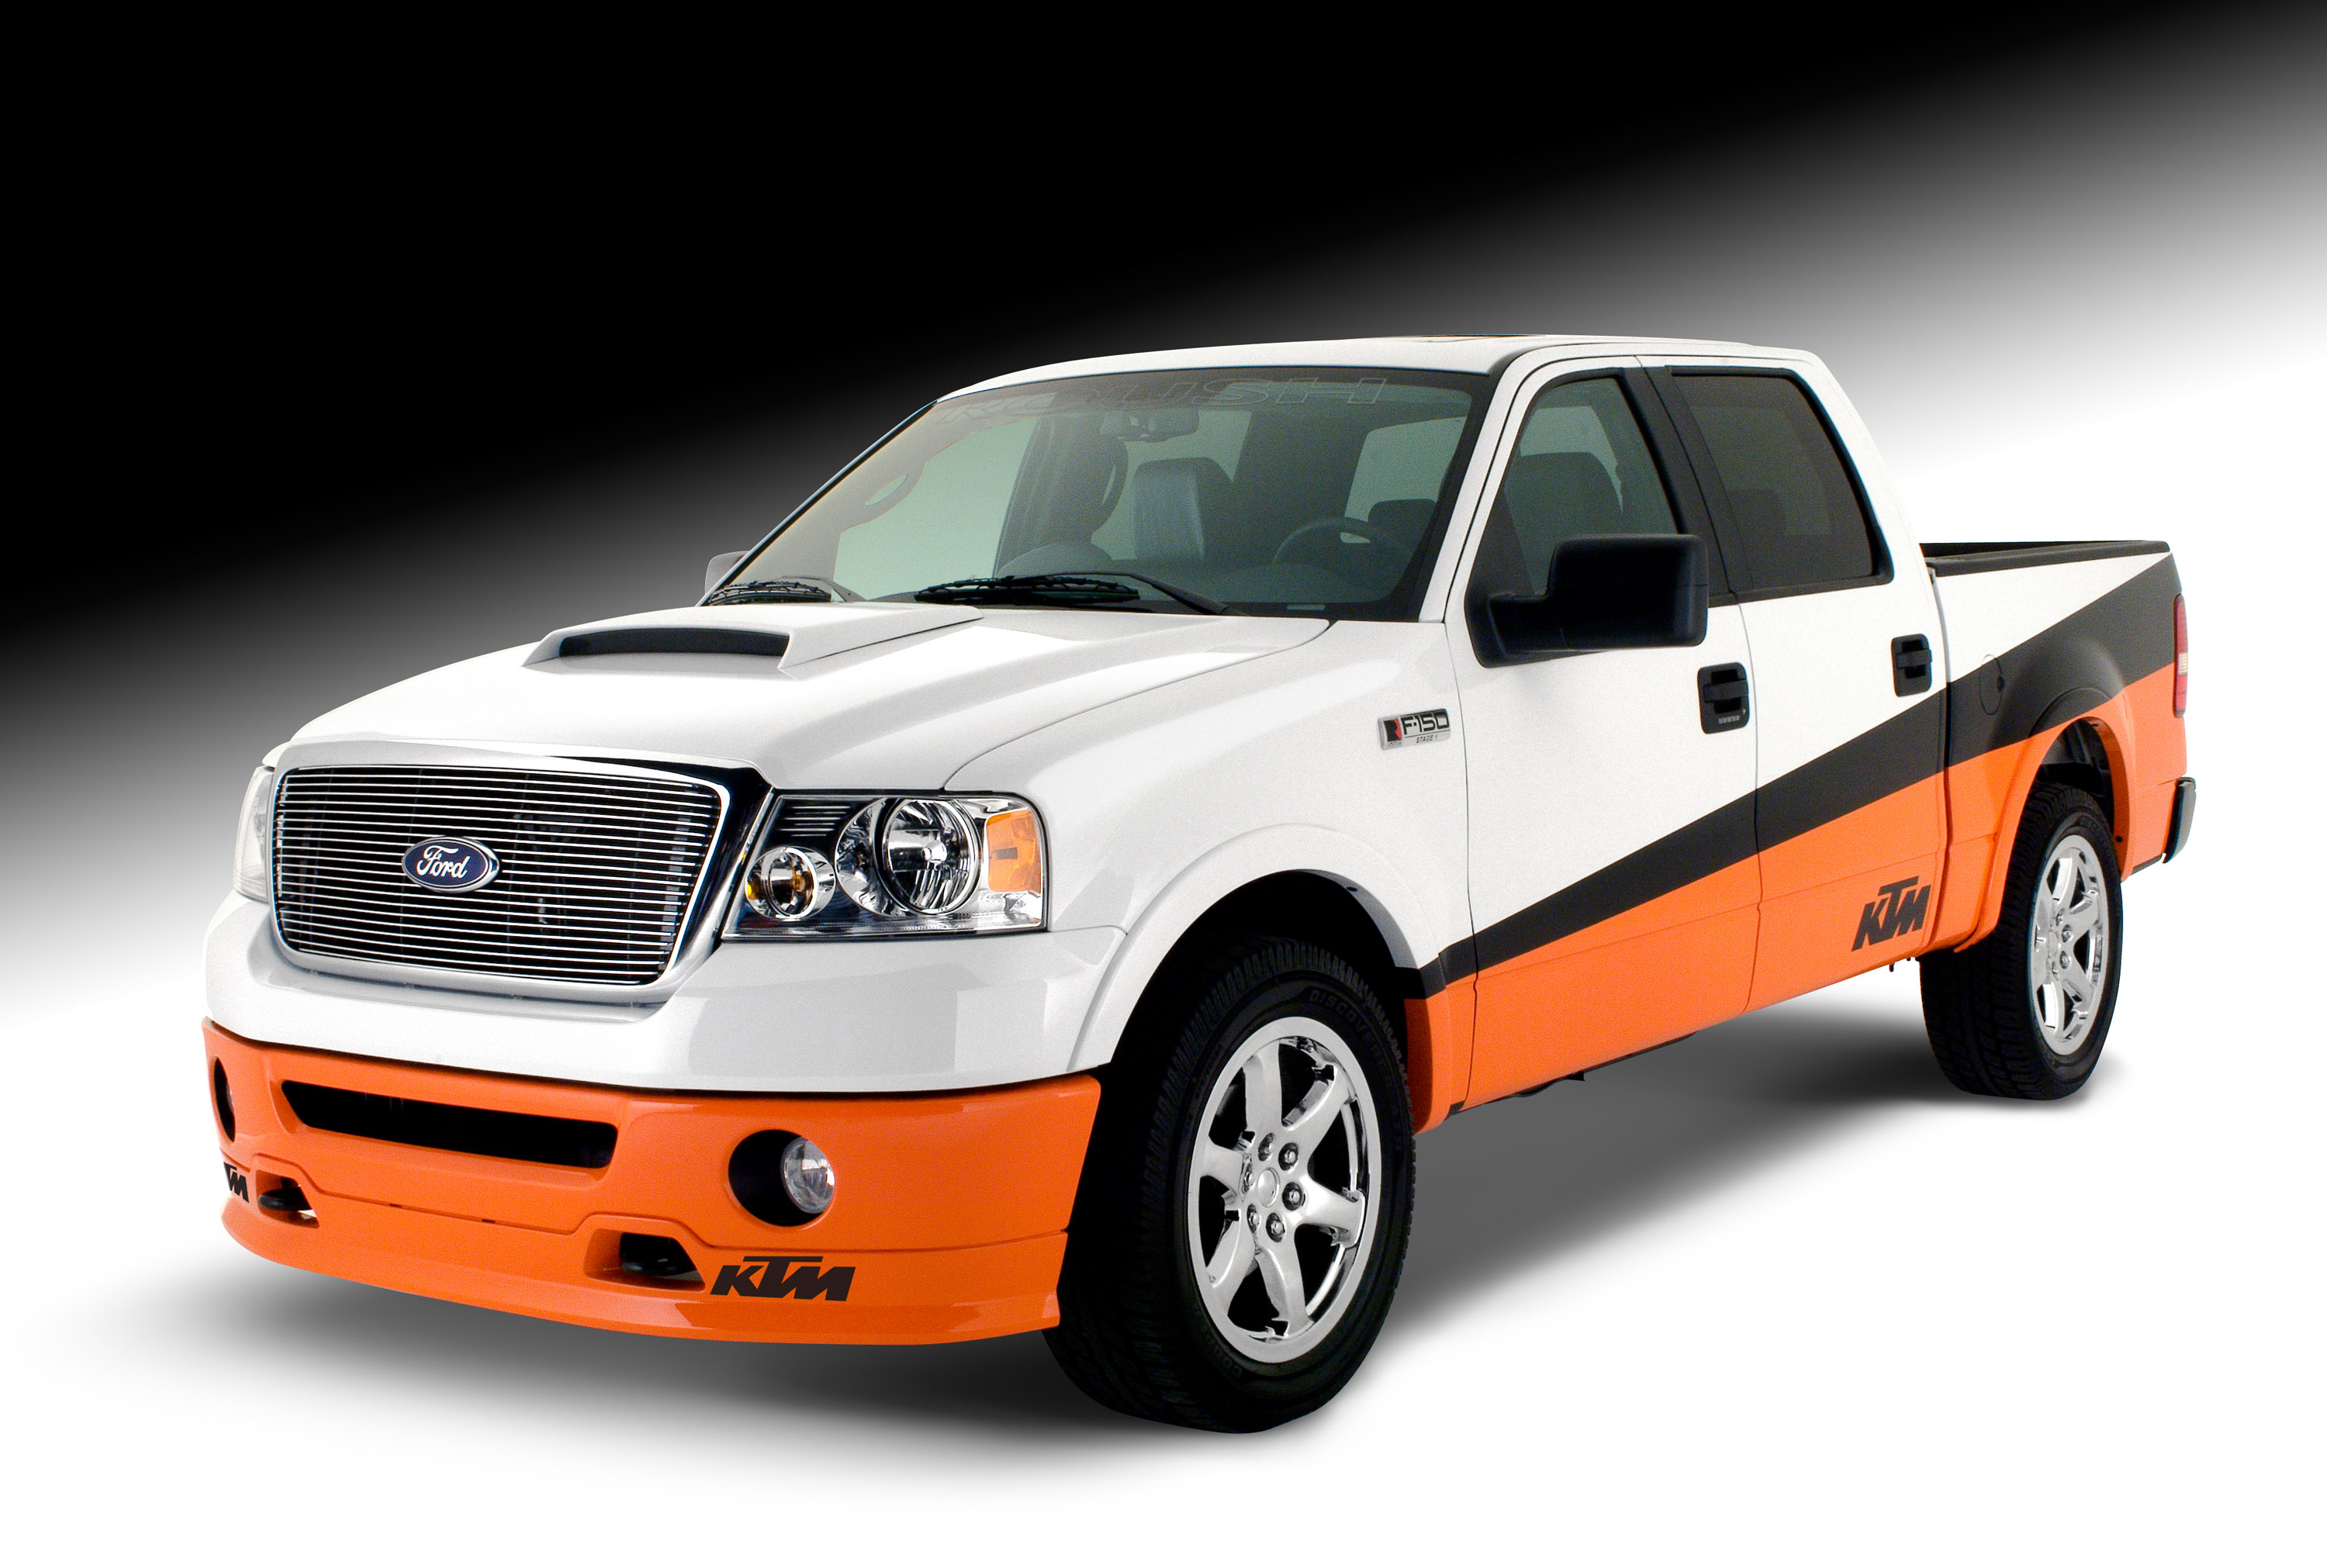 ktm edition roush ford f 150 picture 16372. Black Bedroom Furniture Sets. Home Design Ideas